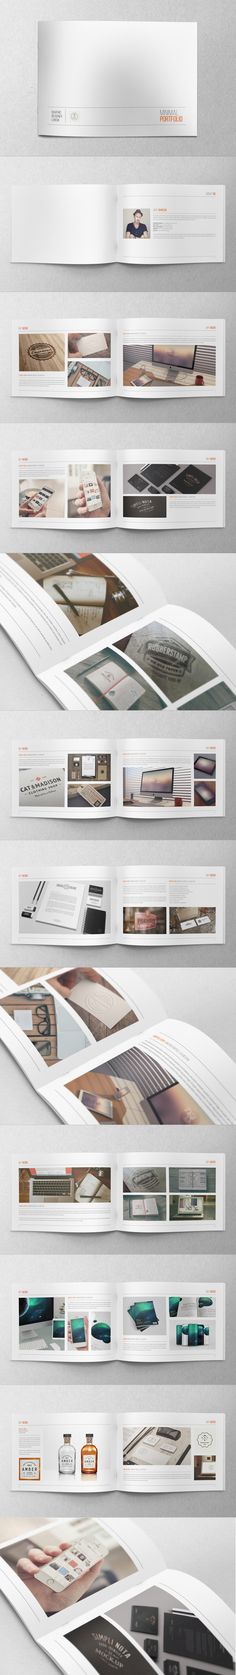 Minimal Hipster Design Portfolio on Behance